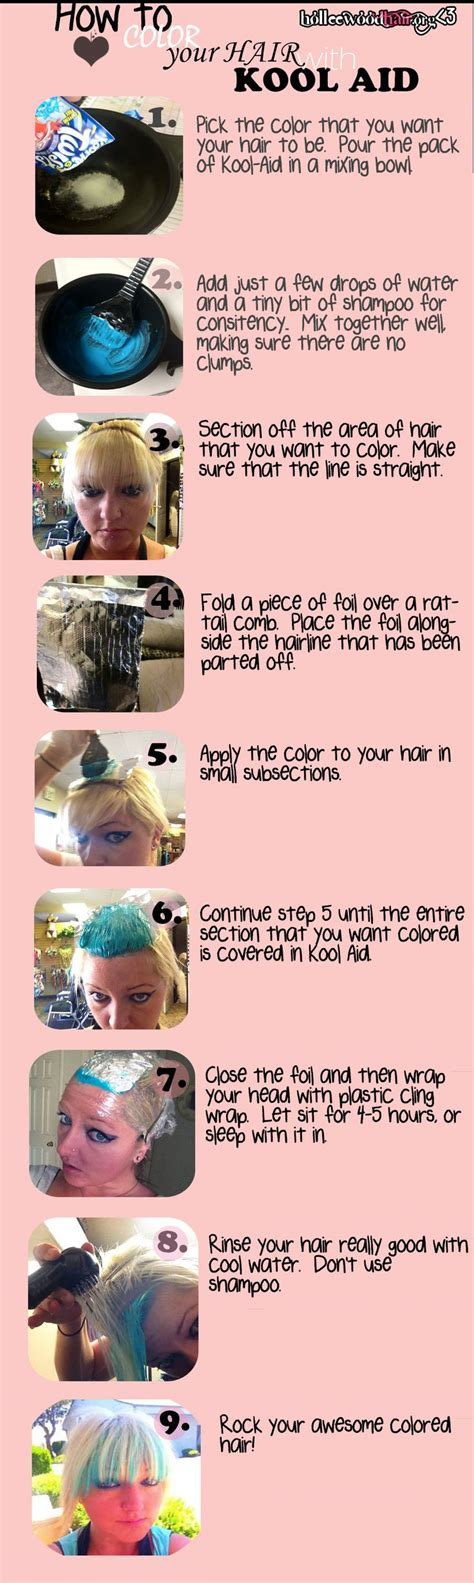 72 Best Images About Kool Aid Hair Dye On Pinterest Dip